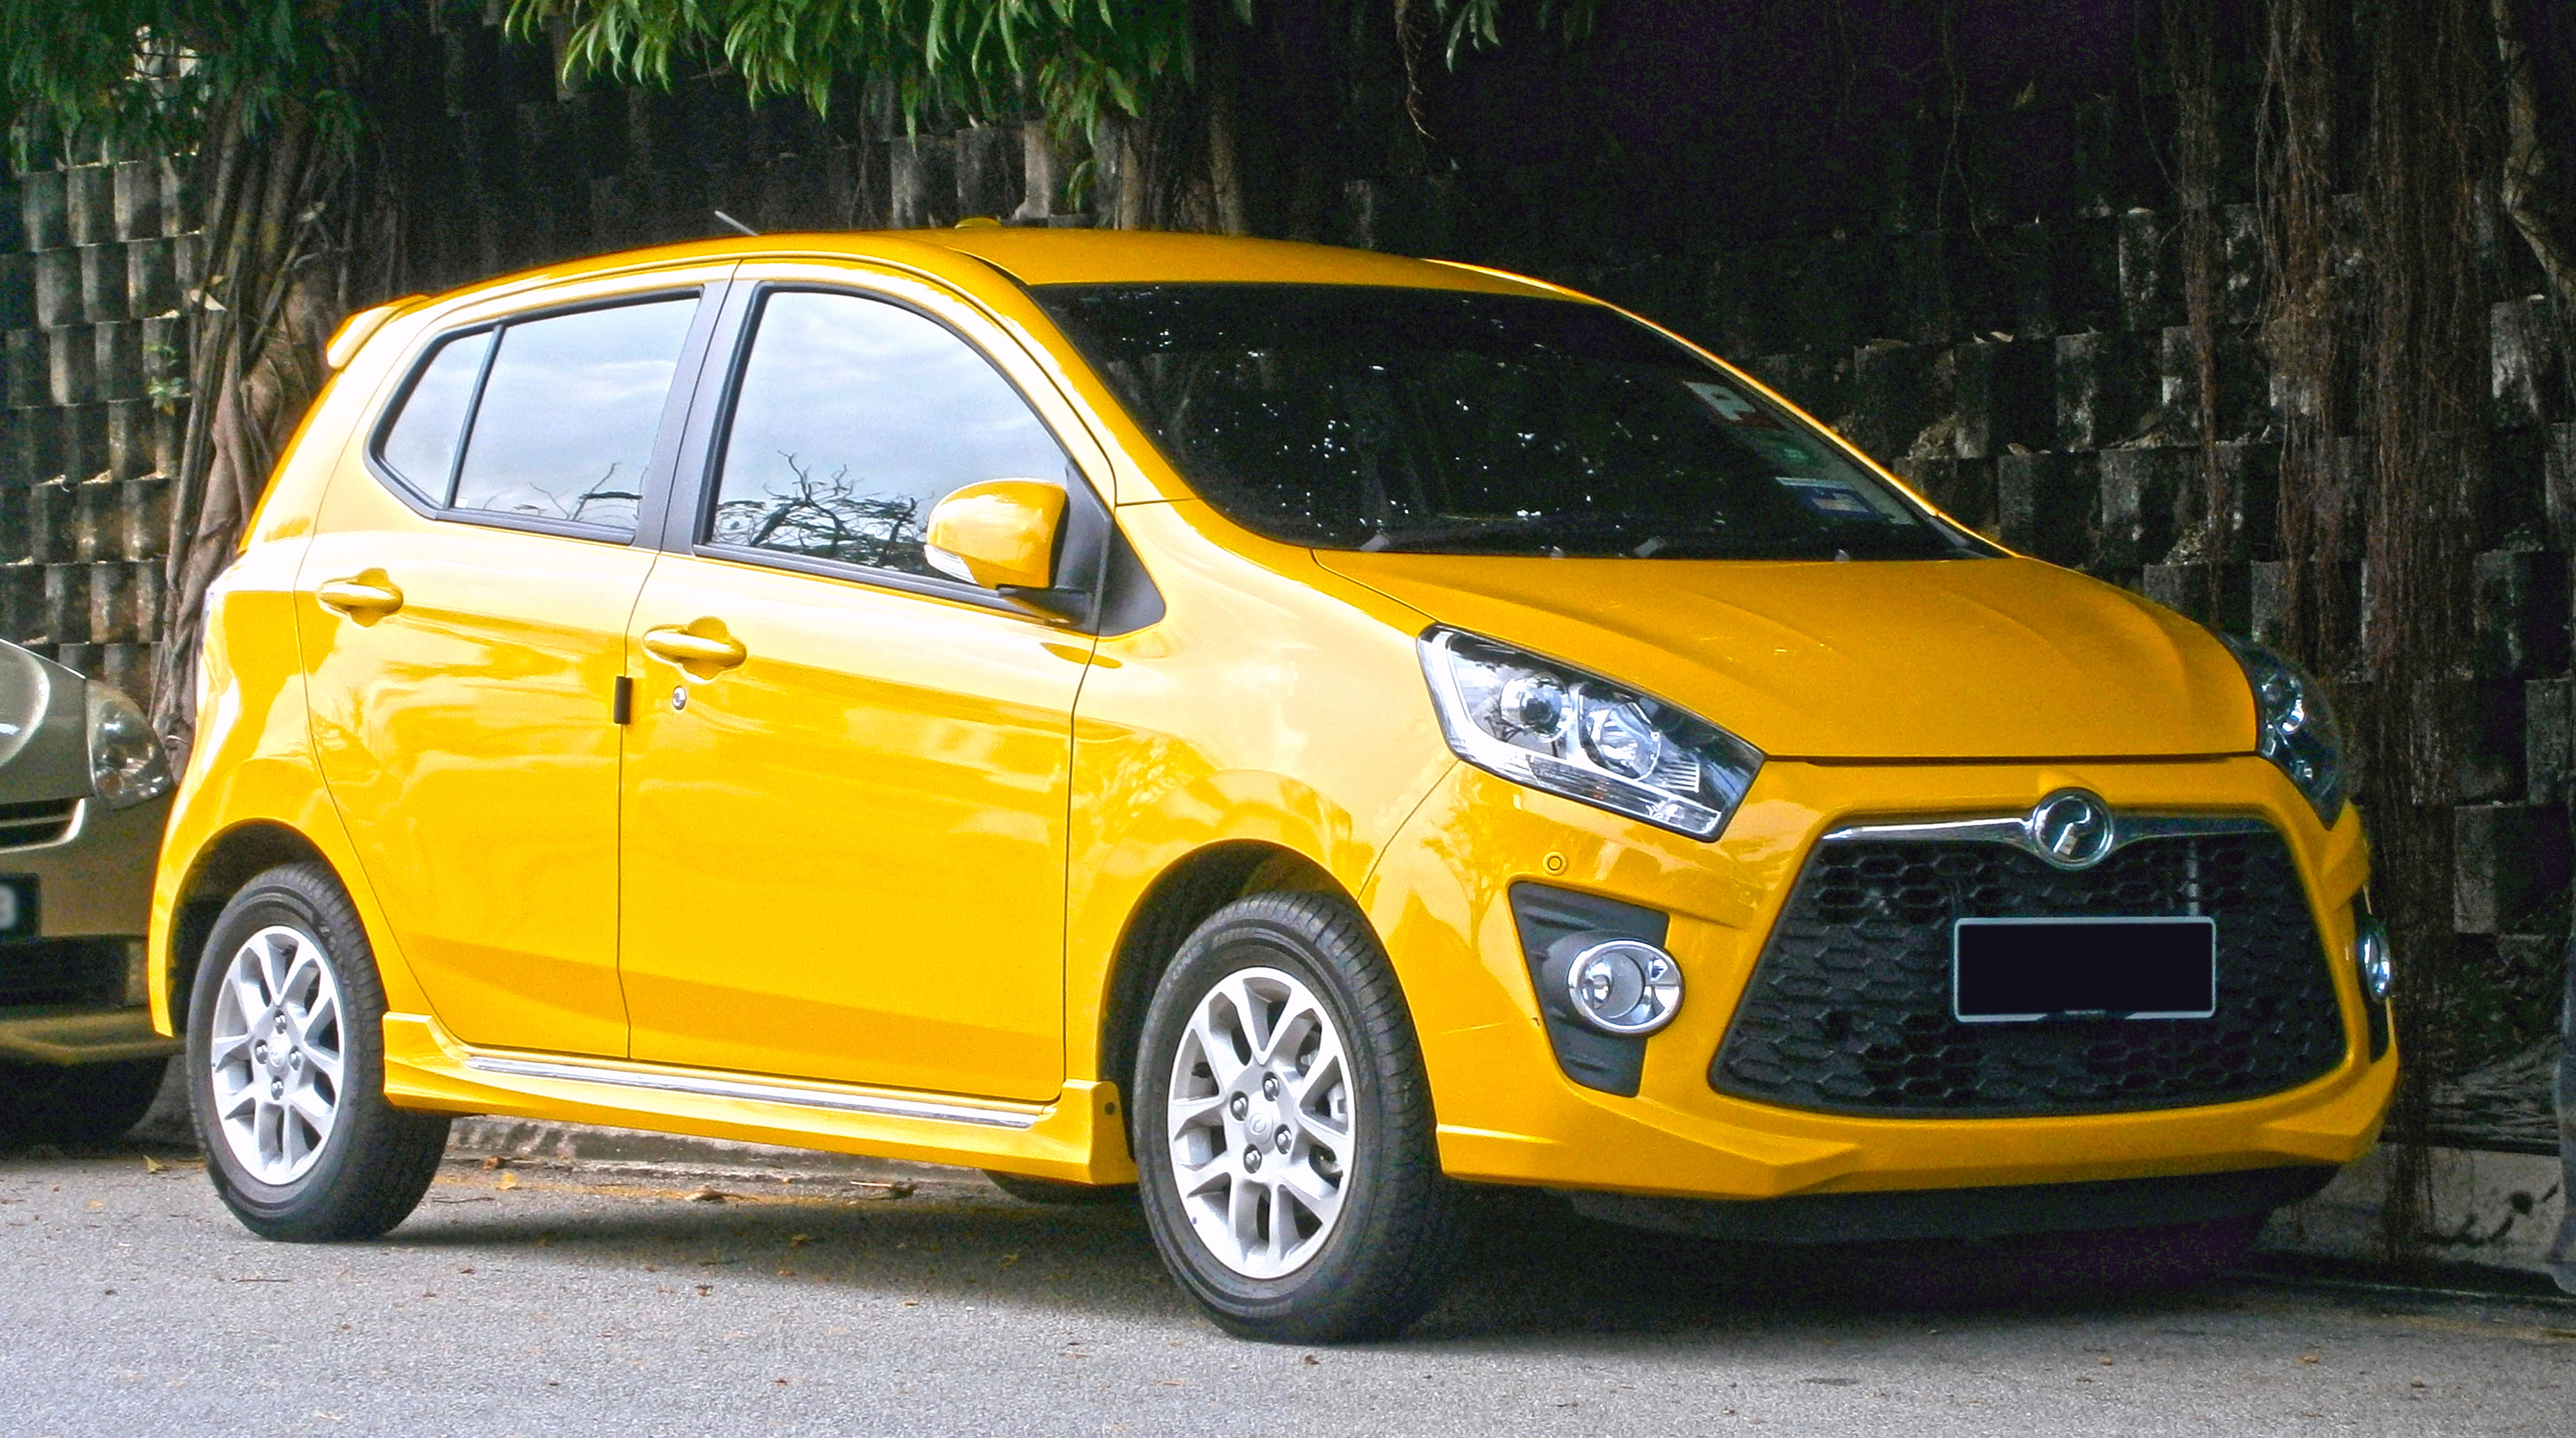 perodua history Perodua-pricecom is tracked by us since june, 2013 over the time it has been ranked as high as 705 599 in the world, while most of its traffic comes from malaysia.